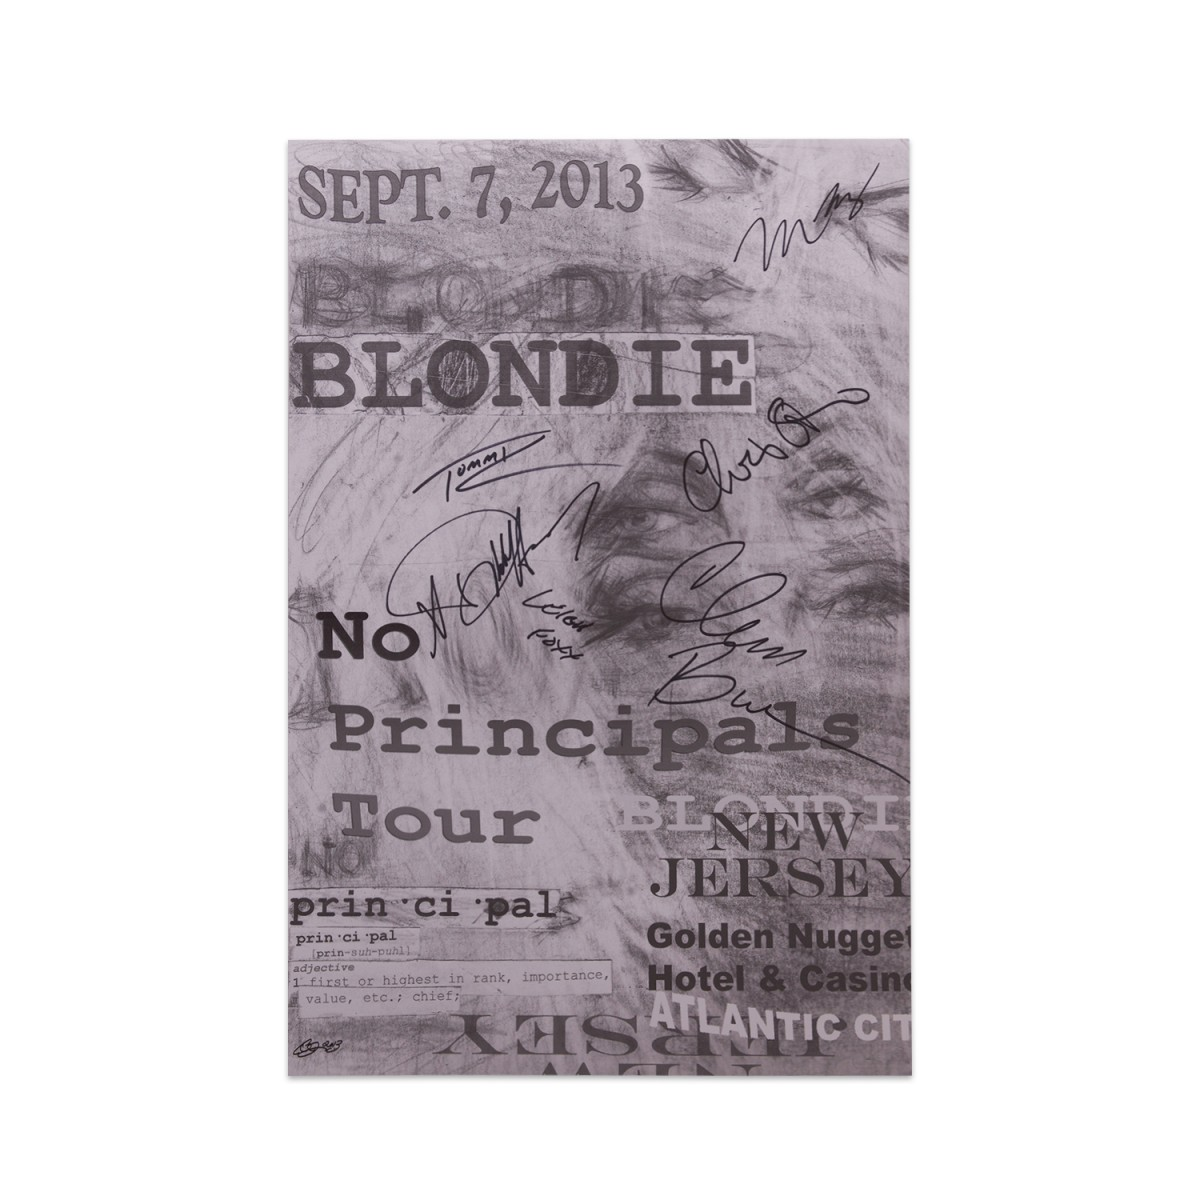 SIGNED ATLANTIC CITY NO PRINCIPALS TOUR POSTER - BlondieUS